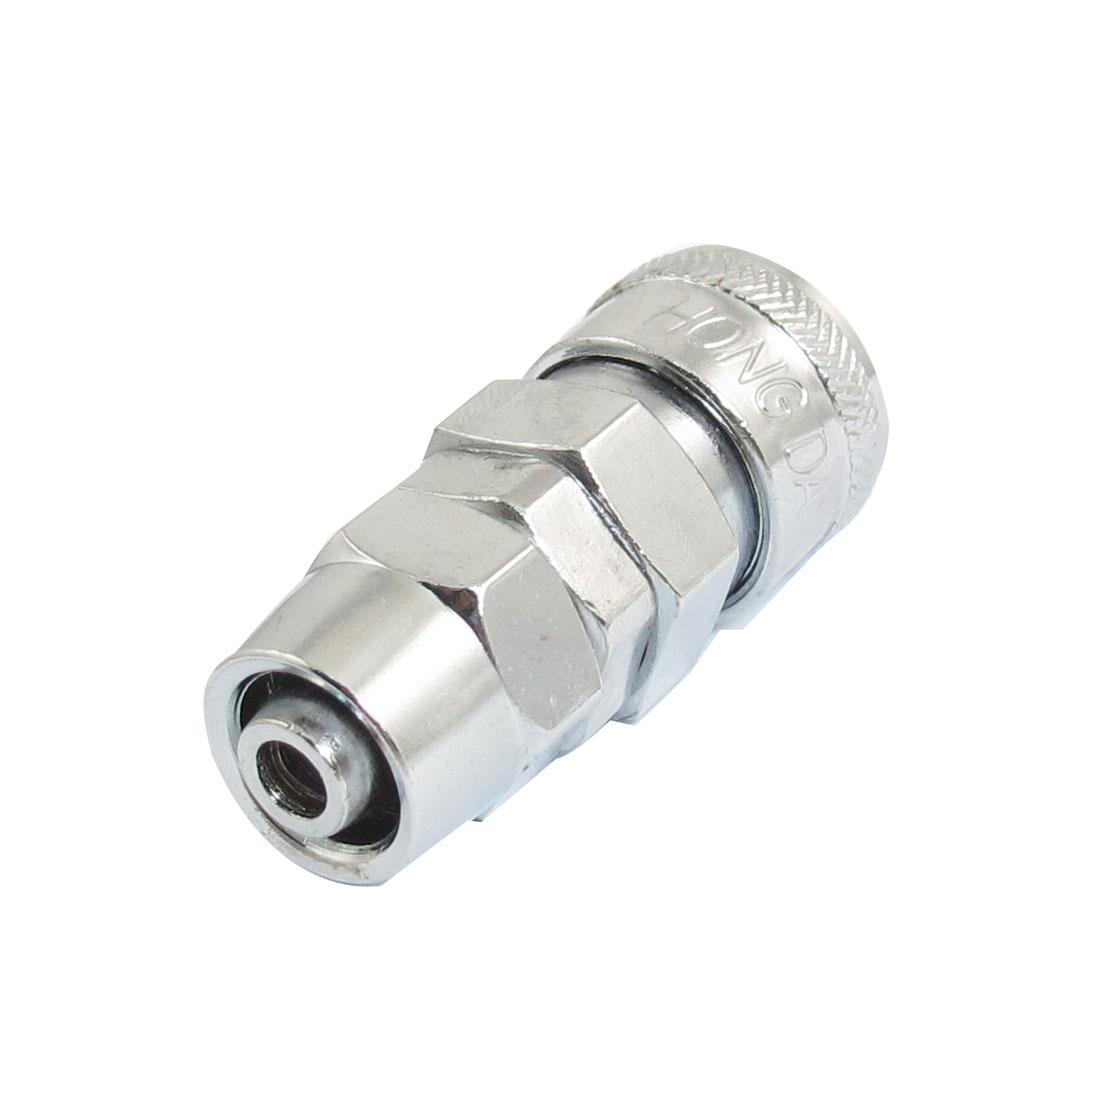 40SP Air Pneumatic Quick Coupler Adapter Connector Fittings for 8mm x 10mm Tube